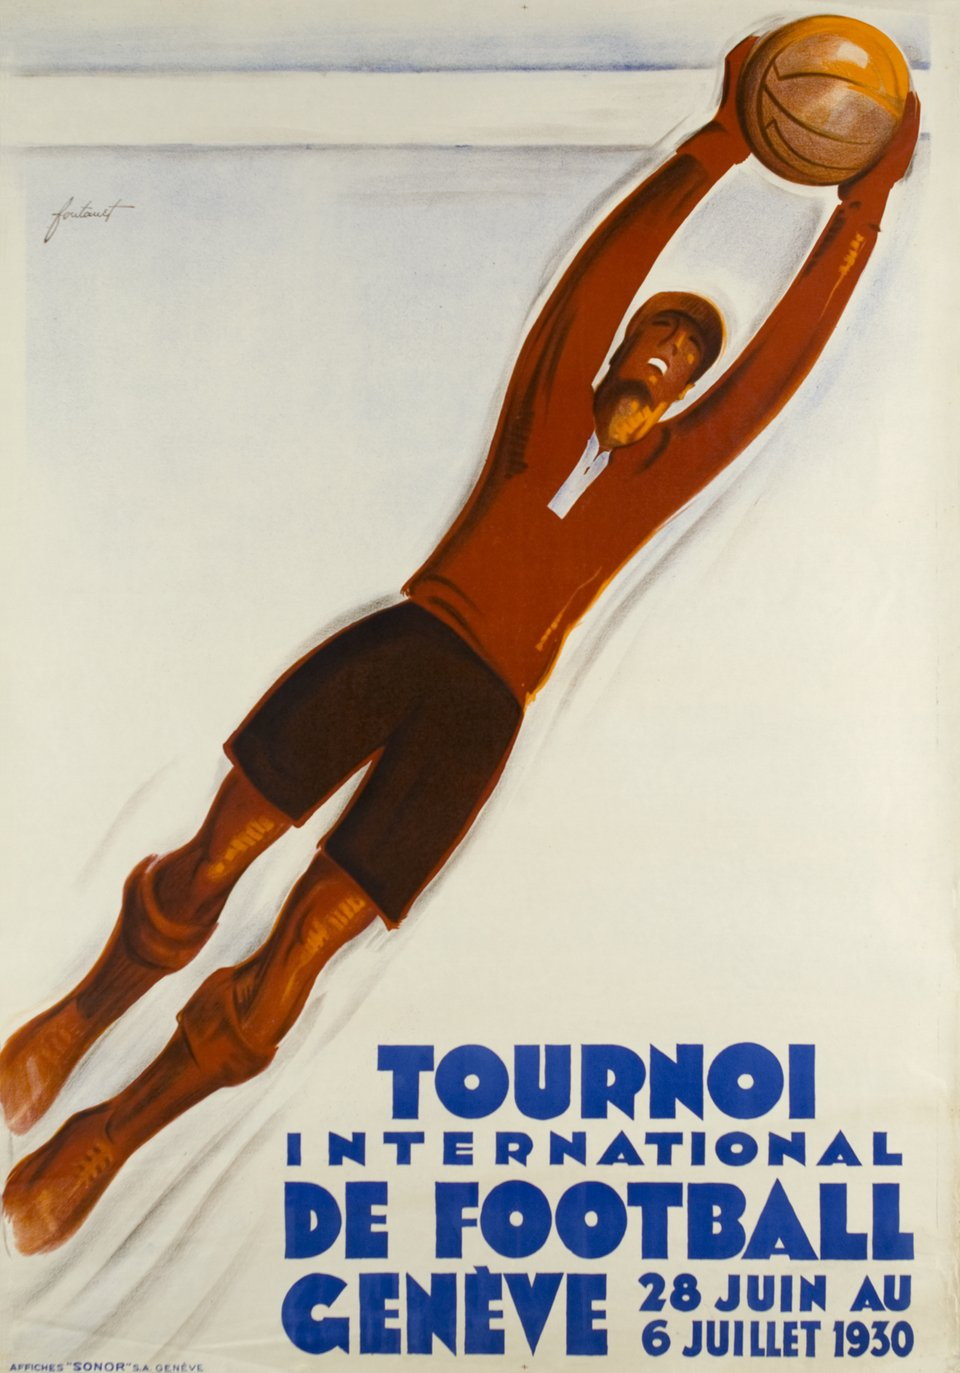 Tournoi international de football, Genève – Vintage poster – Noel FONTANET – 1930